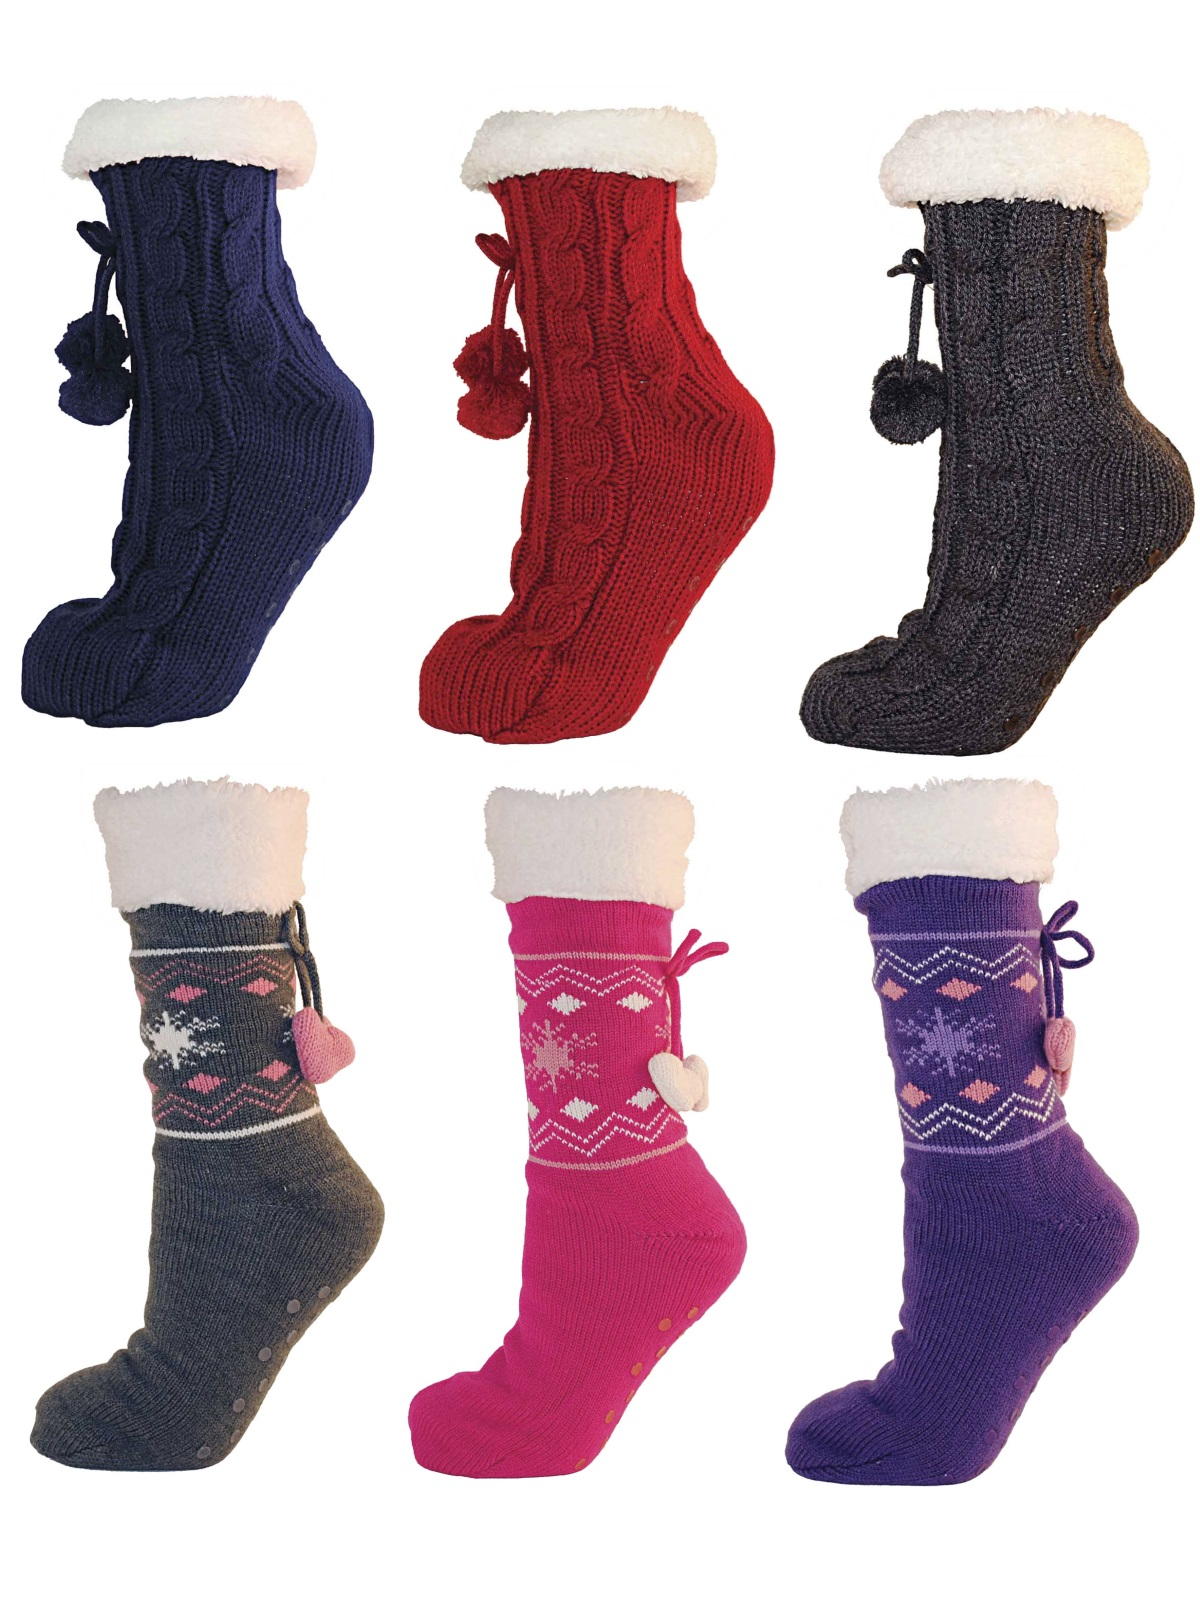 3551be8641e0 Womens Ladies Girls Fur Lined Slipper Socks Lounge Bed Socks Booties Pom  Poms